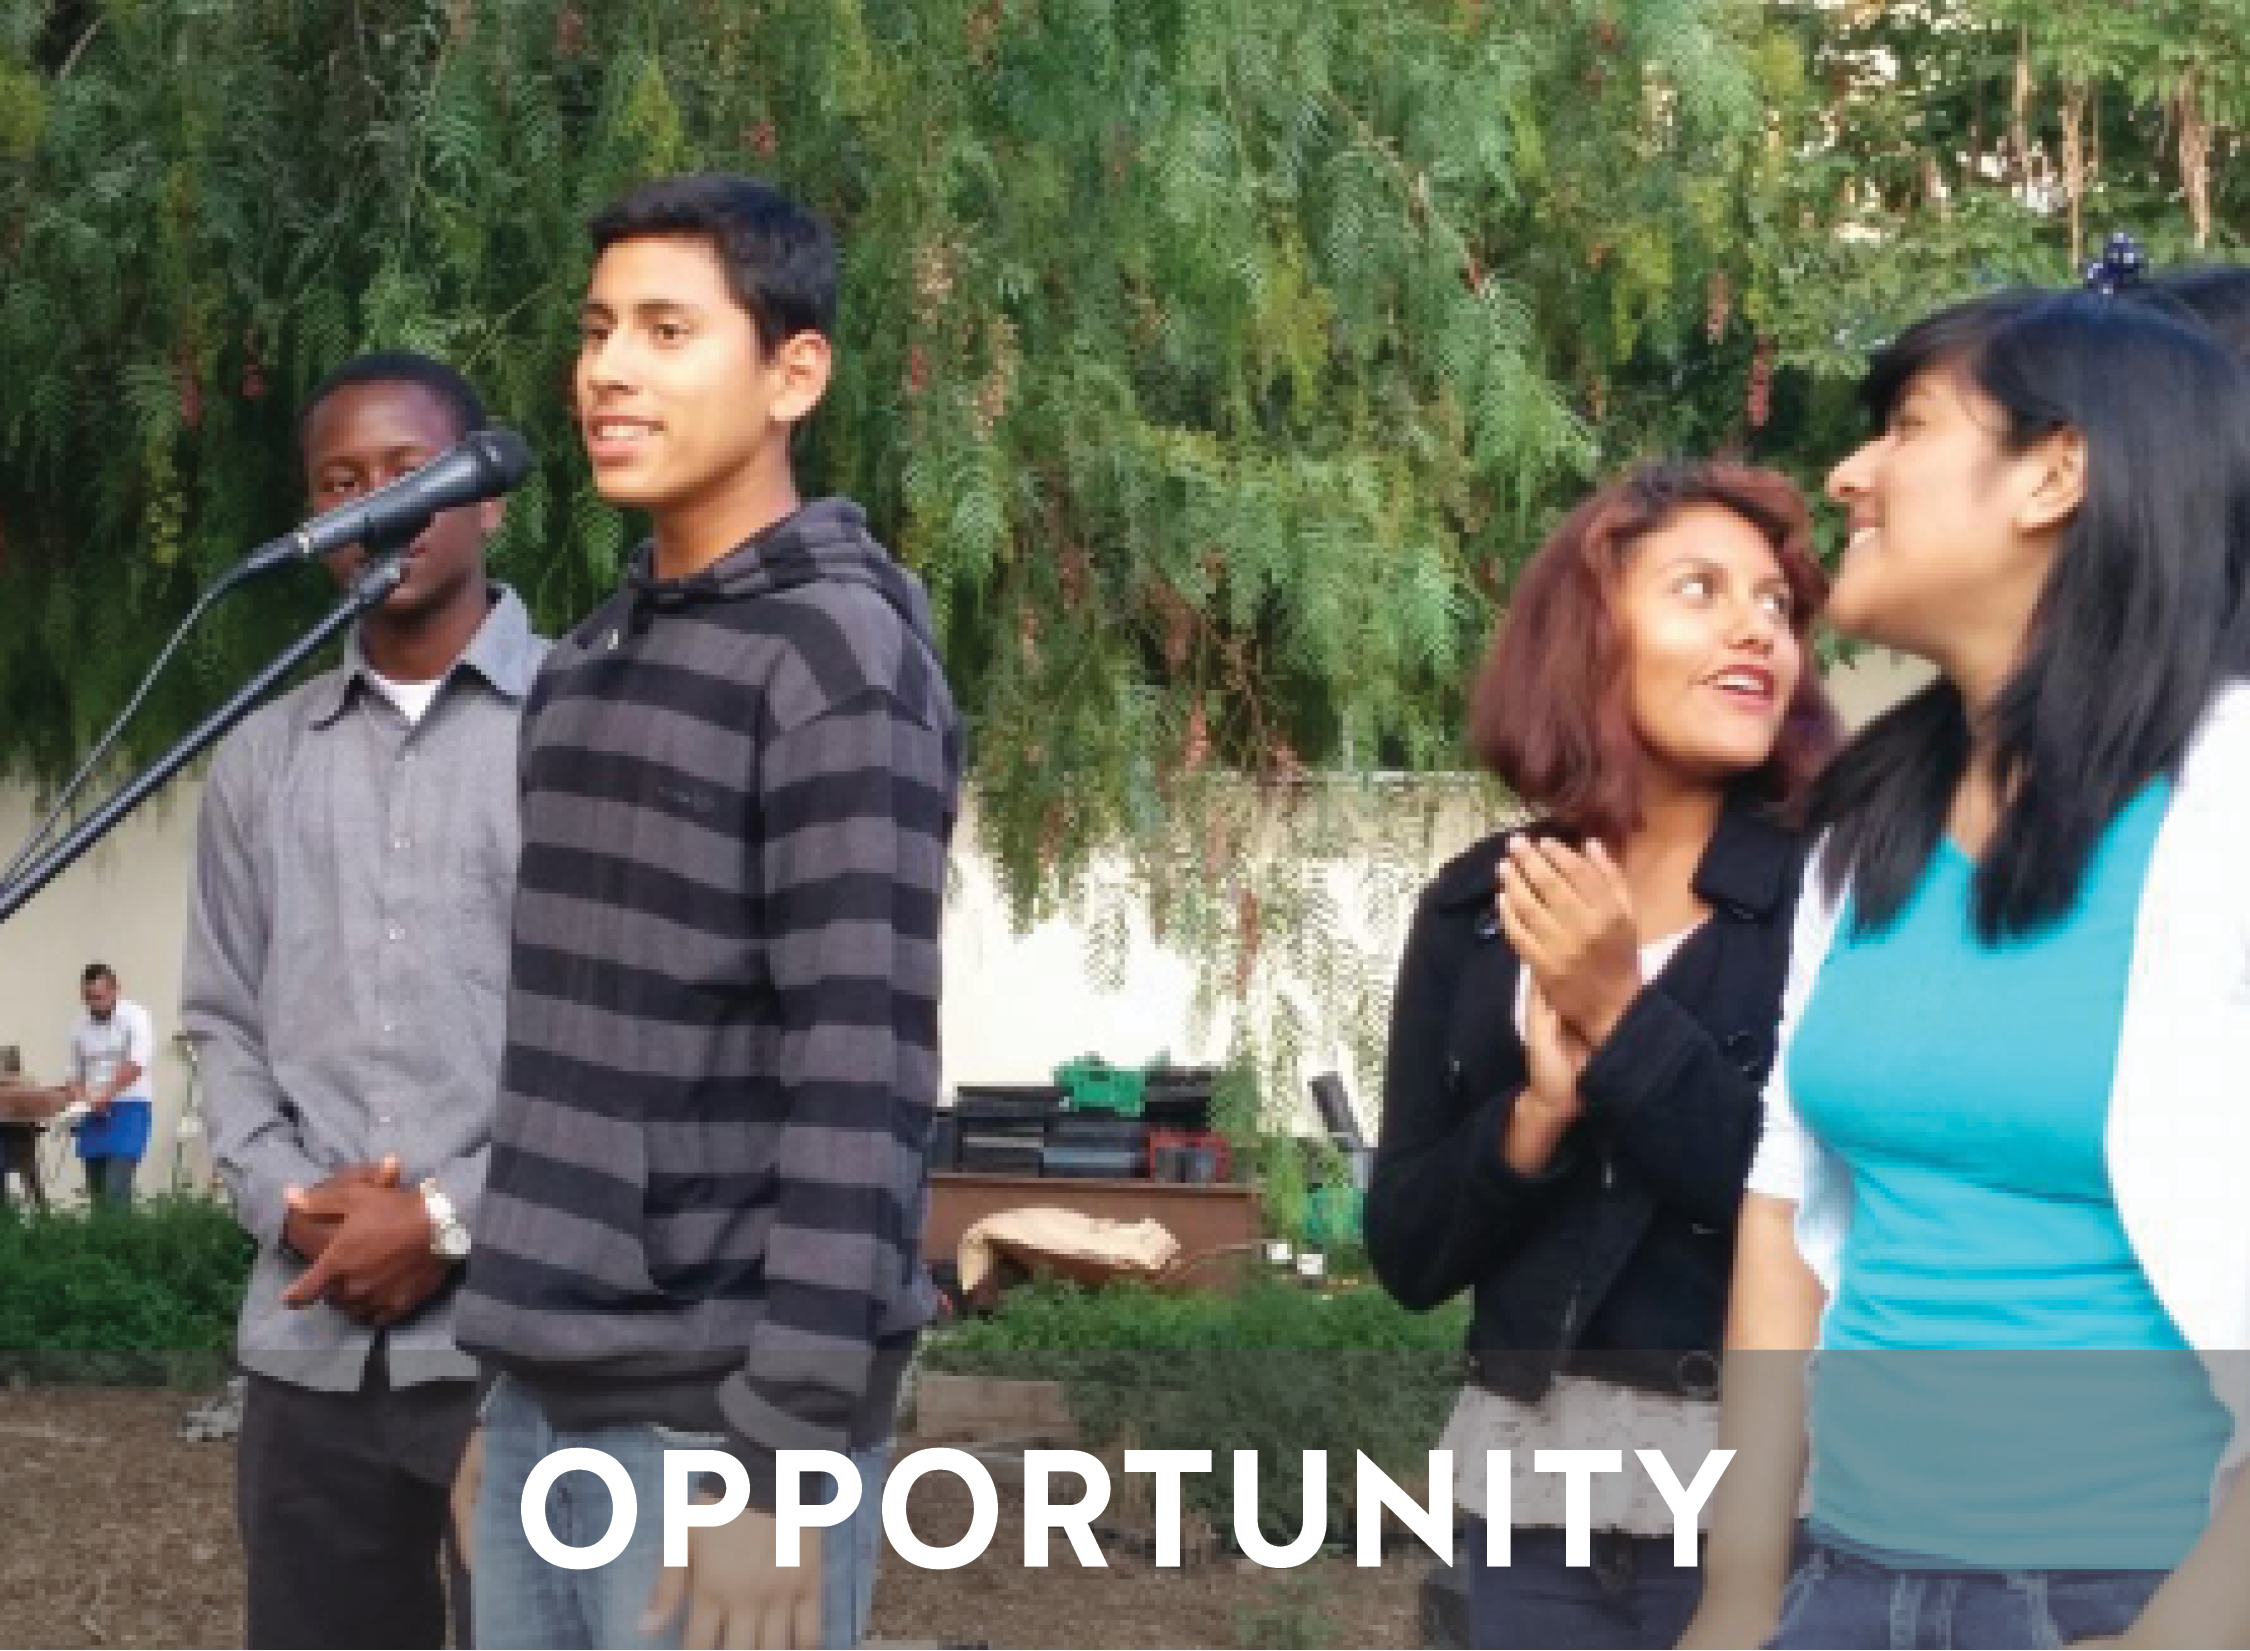 OPPORTUNITY   Our Healthy Food Ventures and programs create opportunities that all youth need to thrive - such as safe spaces to learn, community service projects, mentorship, networking opportunities, and first job experiences.